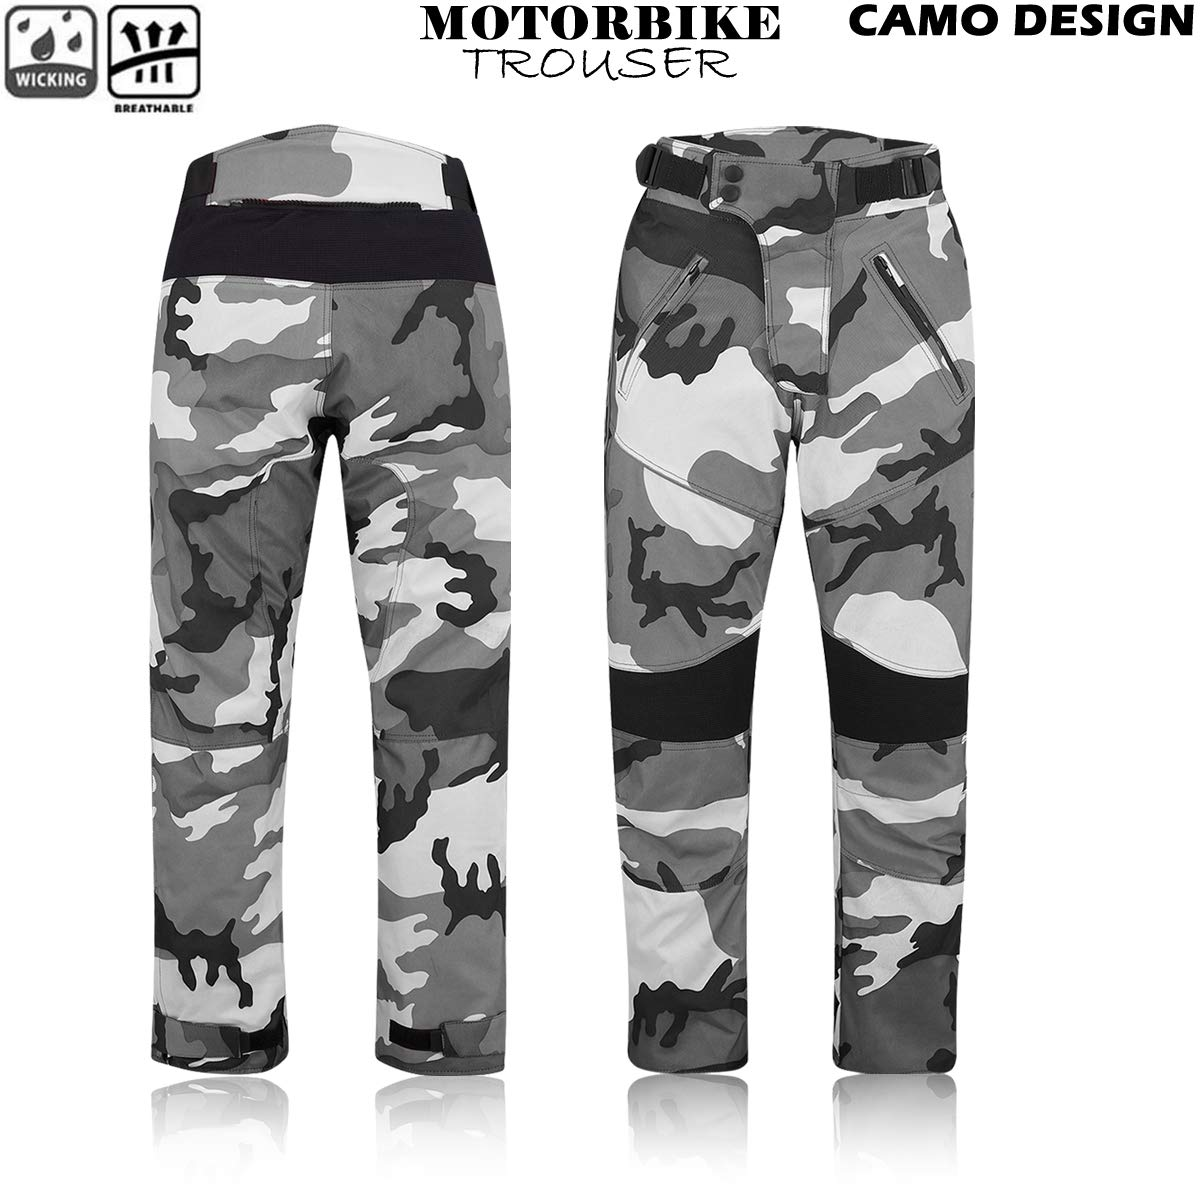 Motorbike Cordura Textile Waterproof Trousers Motorcycle Camouflage Trouser Long Pants Armoured BLUE CAMO, 34